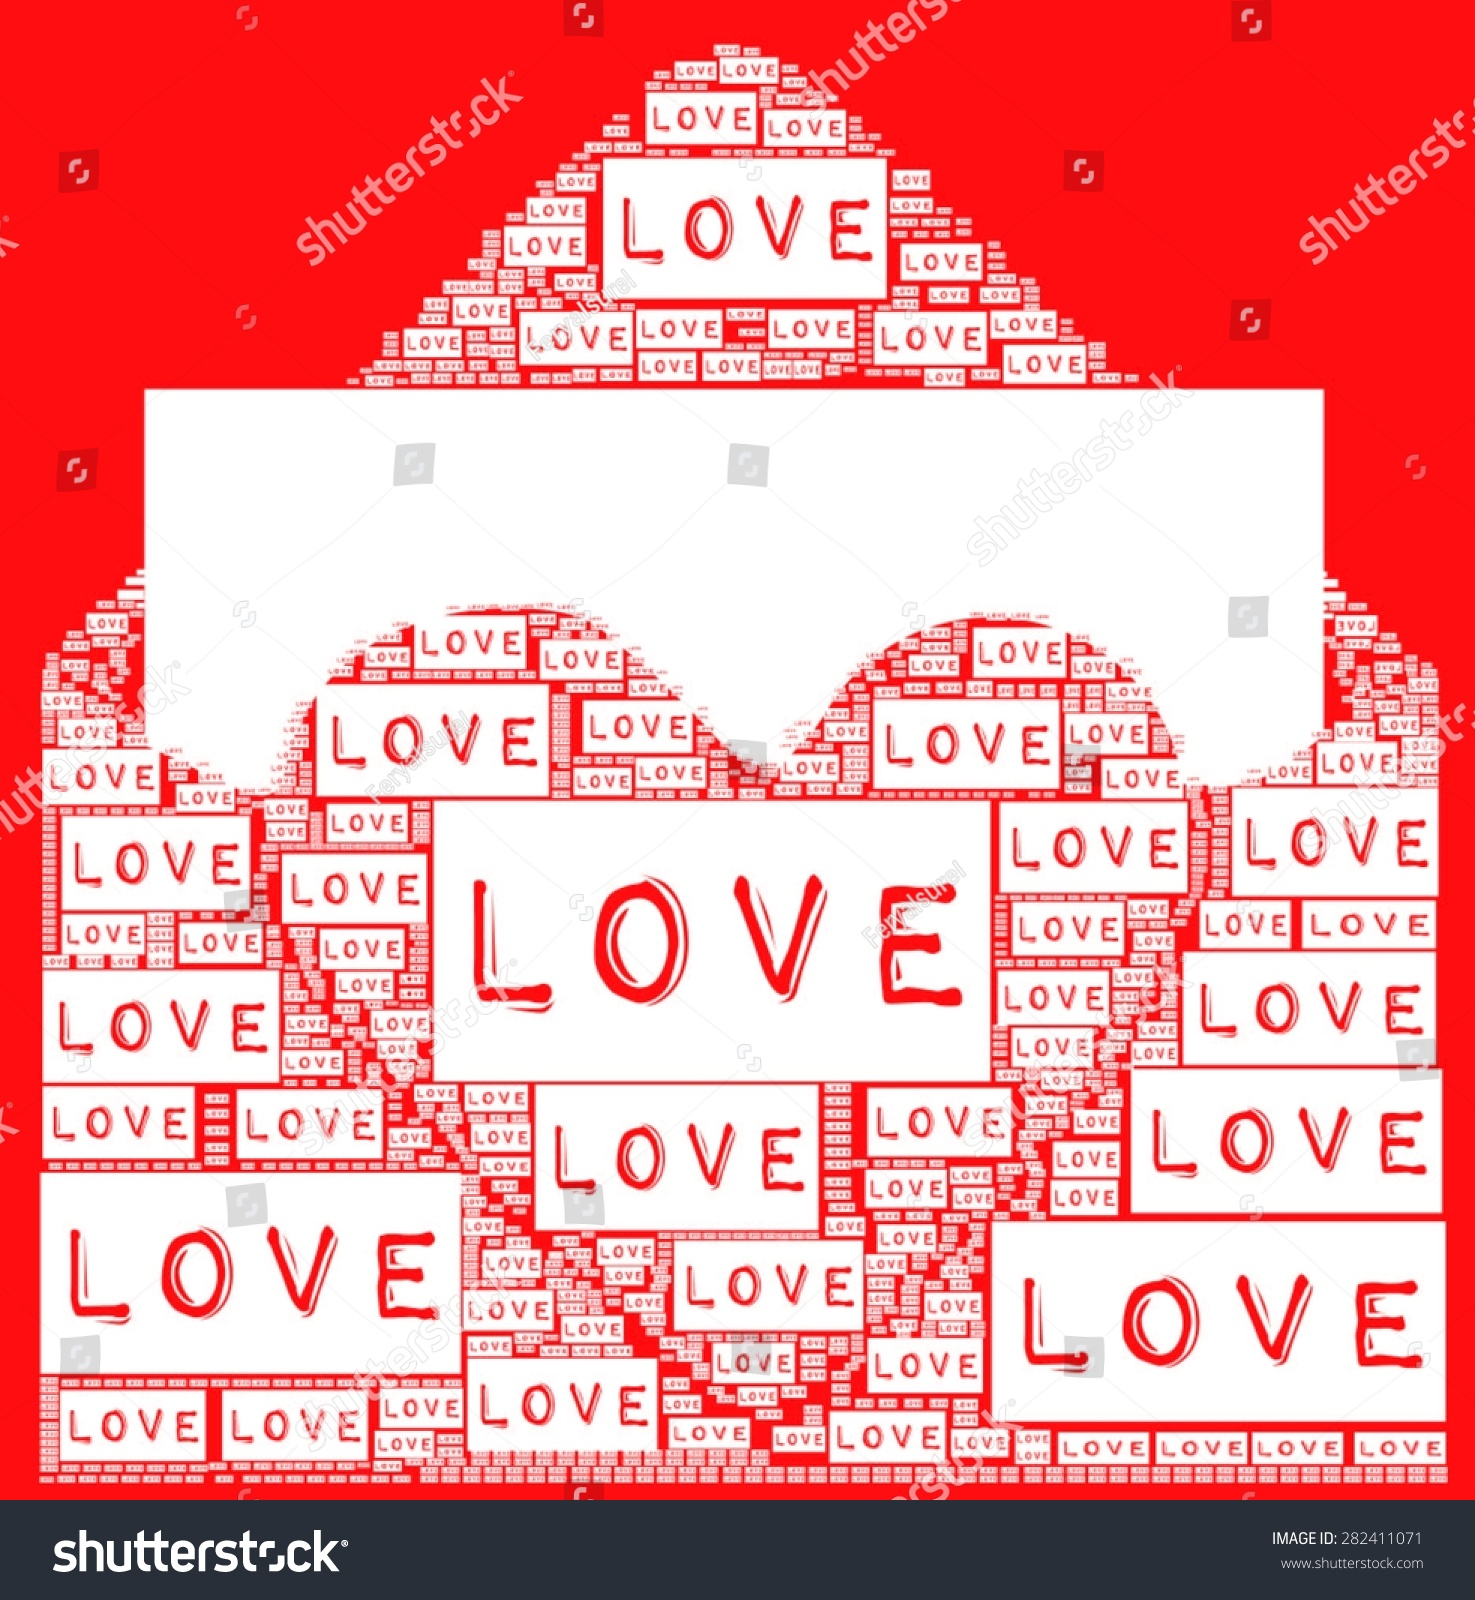 Shirt design envelope - Red Background With Love Letters And Love Heart Illustration Become Envelope Design Vector Print Pattern